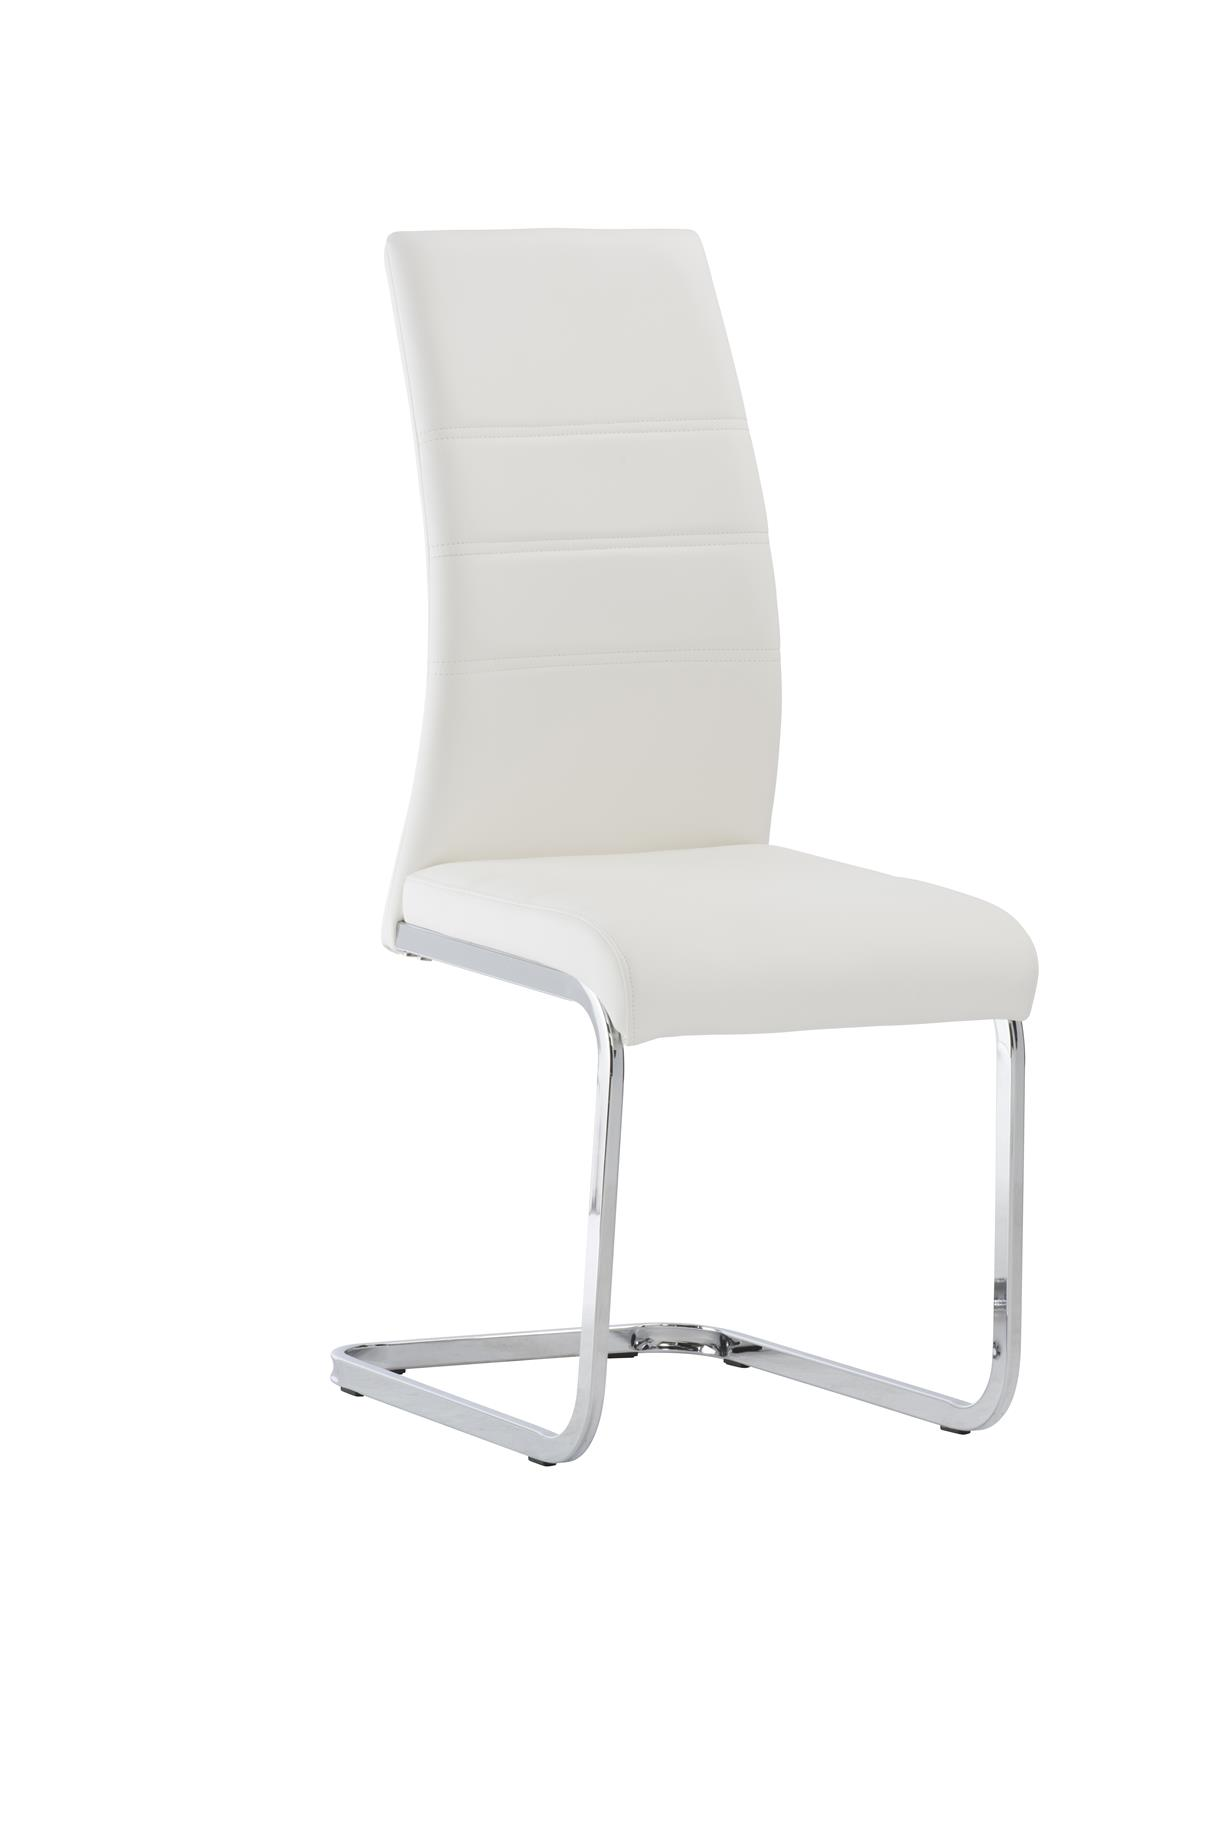 Peachy Soho White Dining Chairs Pack Of Two Caraccident5 Cool Chair Designs And Ideas Caraccident5Info